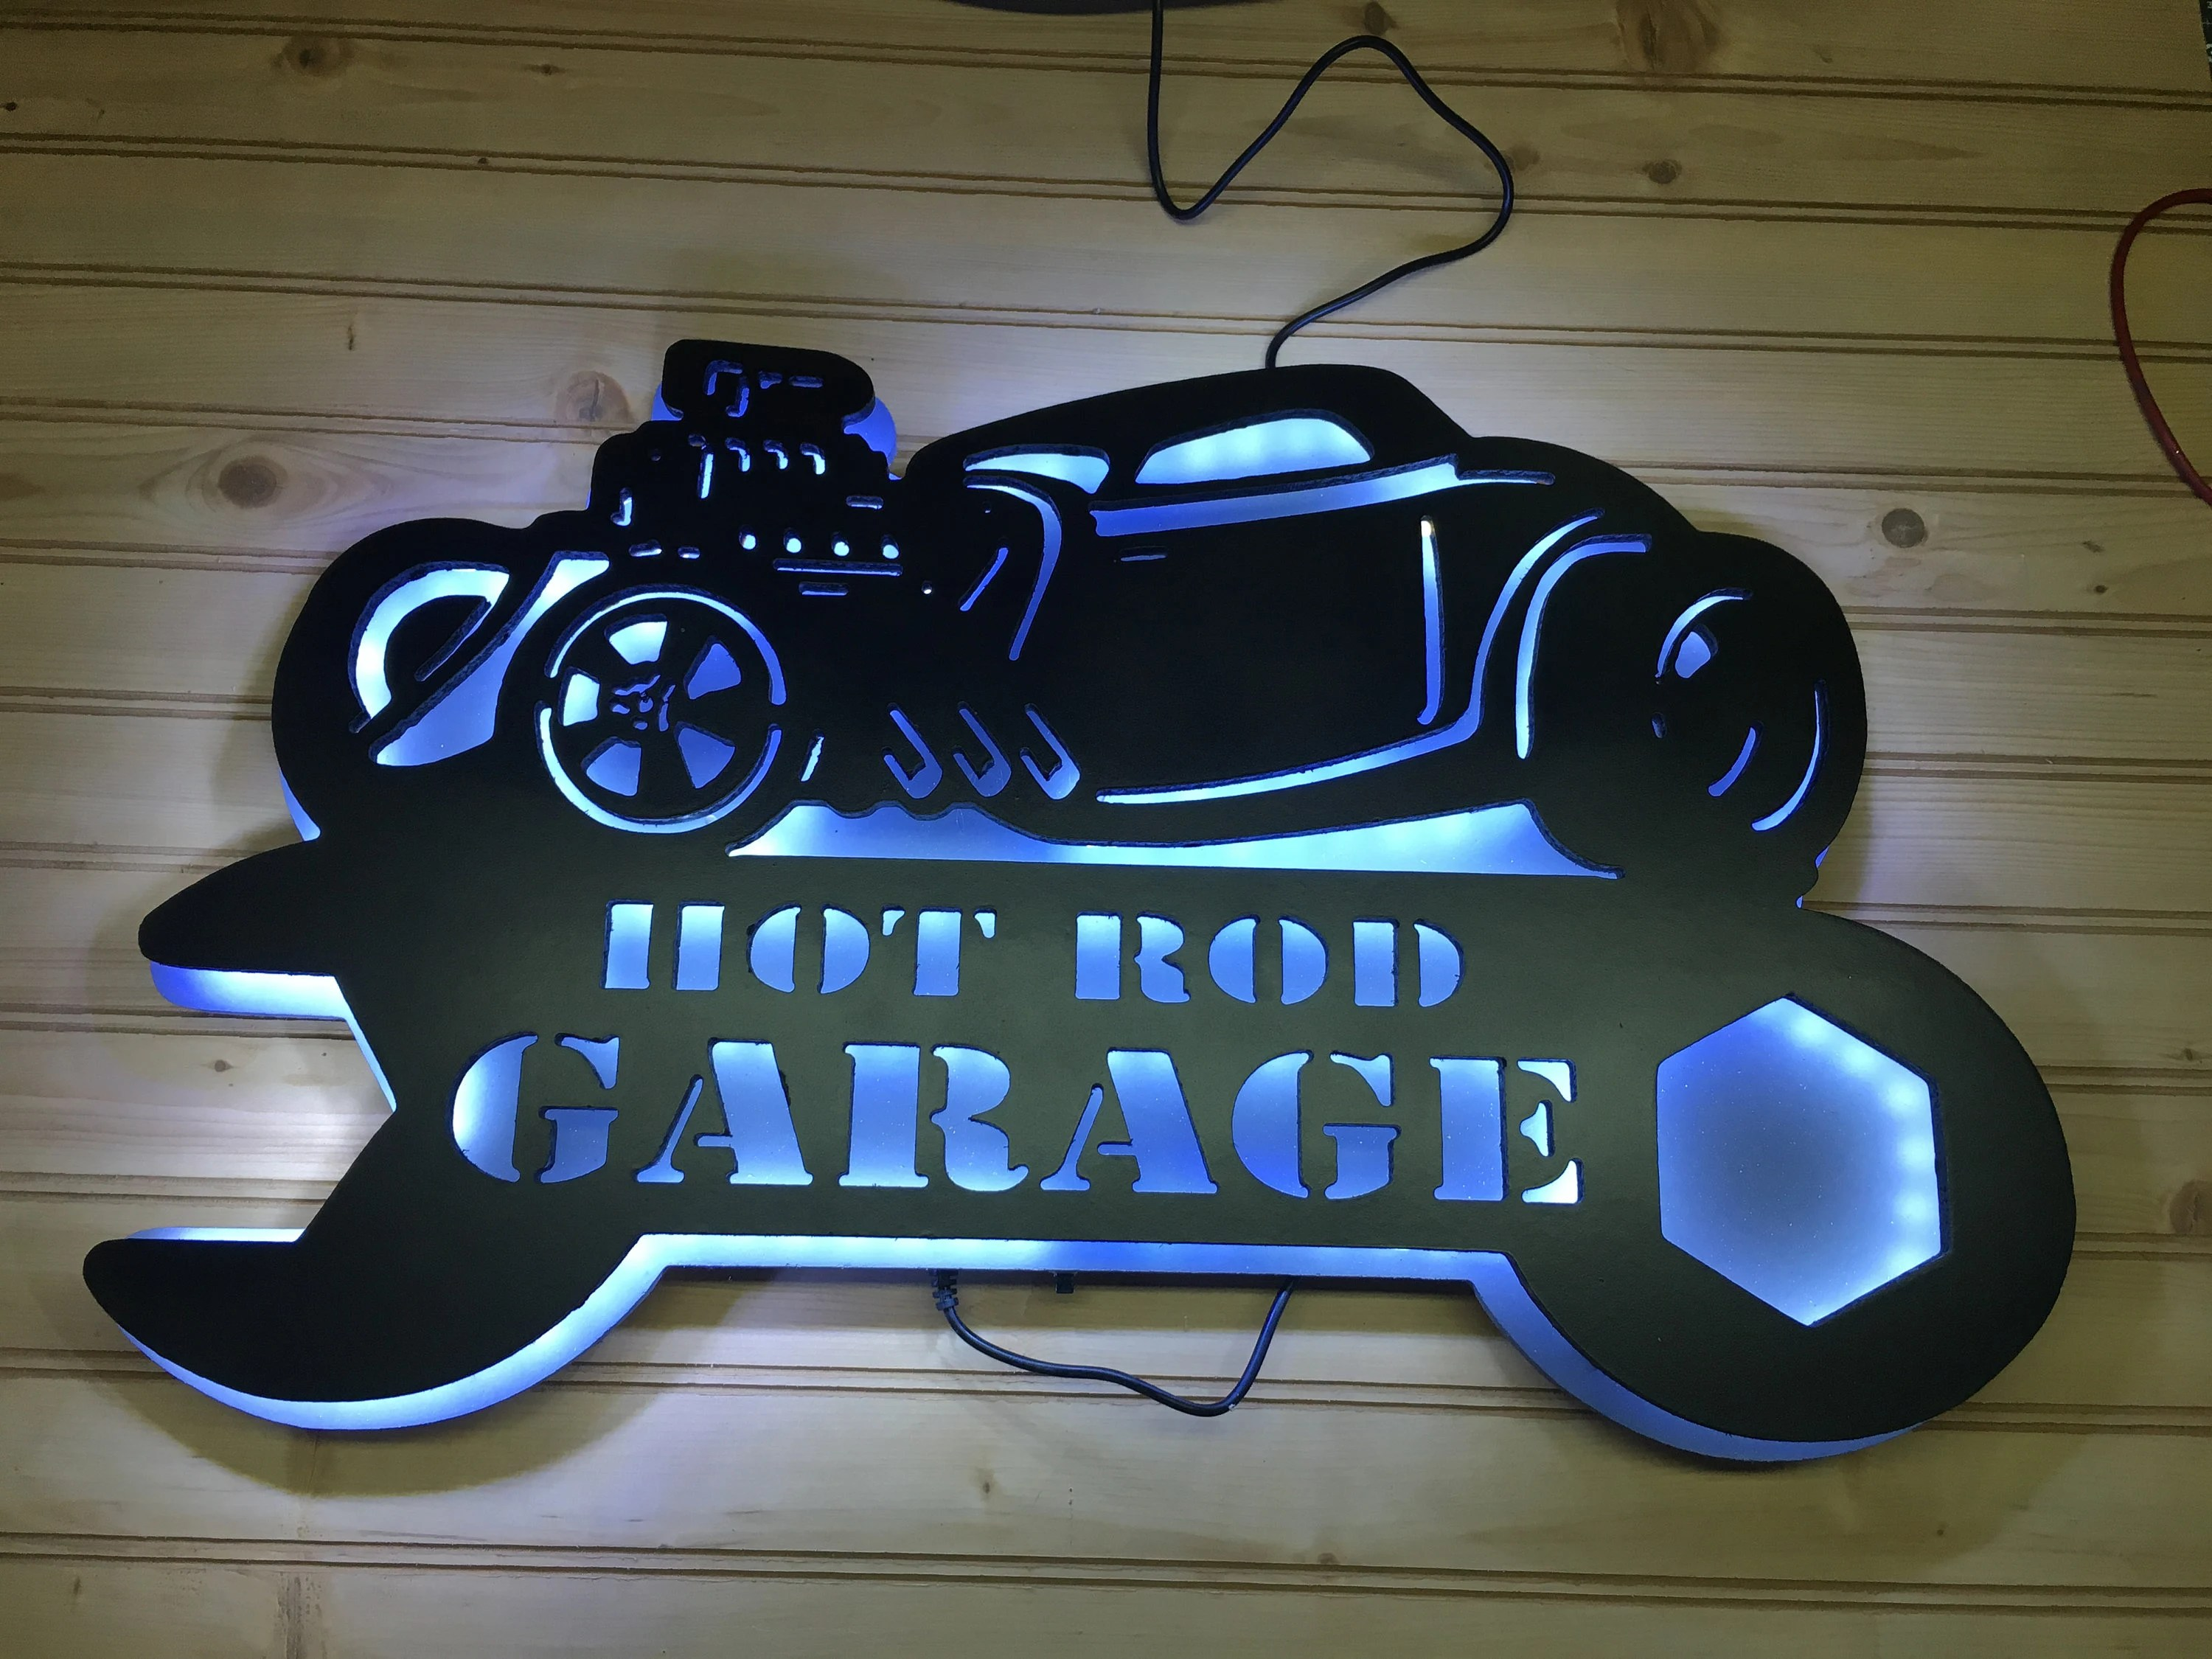 Garage Man Cave Extension Hod Rod Led Sign Garage Art Led Sign Man Cave Sign Rat Rod Classic Car Wall Art Vintage Car Sign Wall Decor Garage Sign Gift